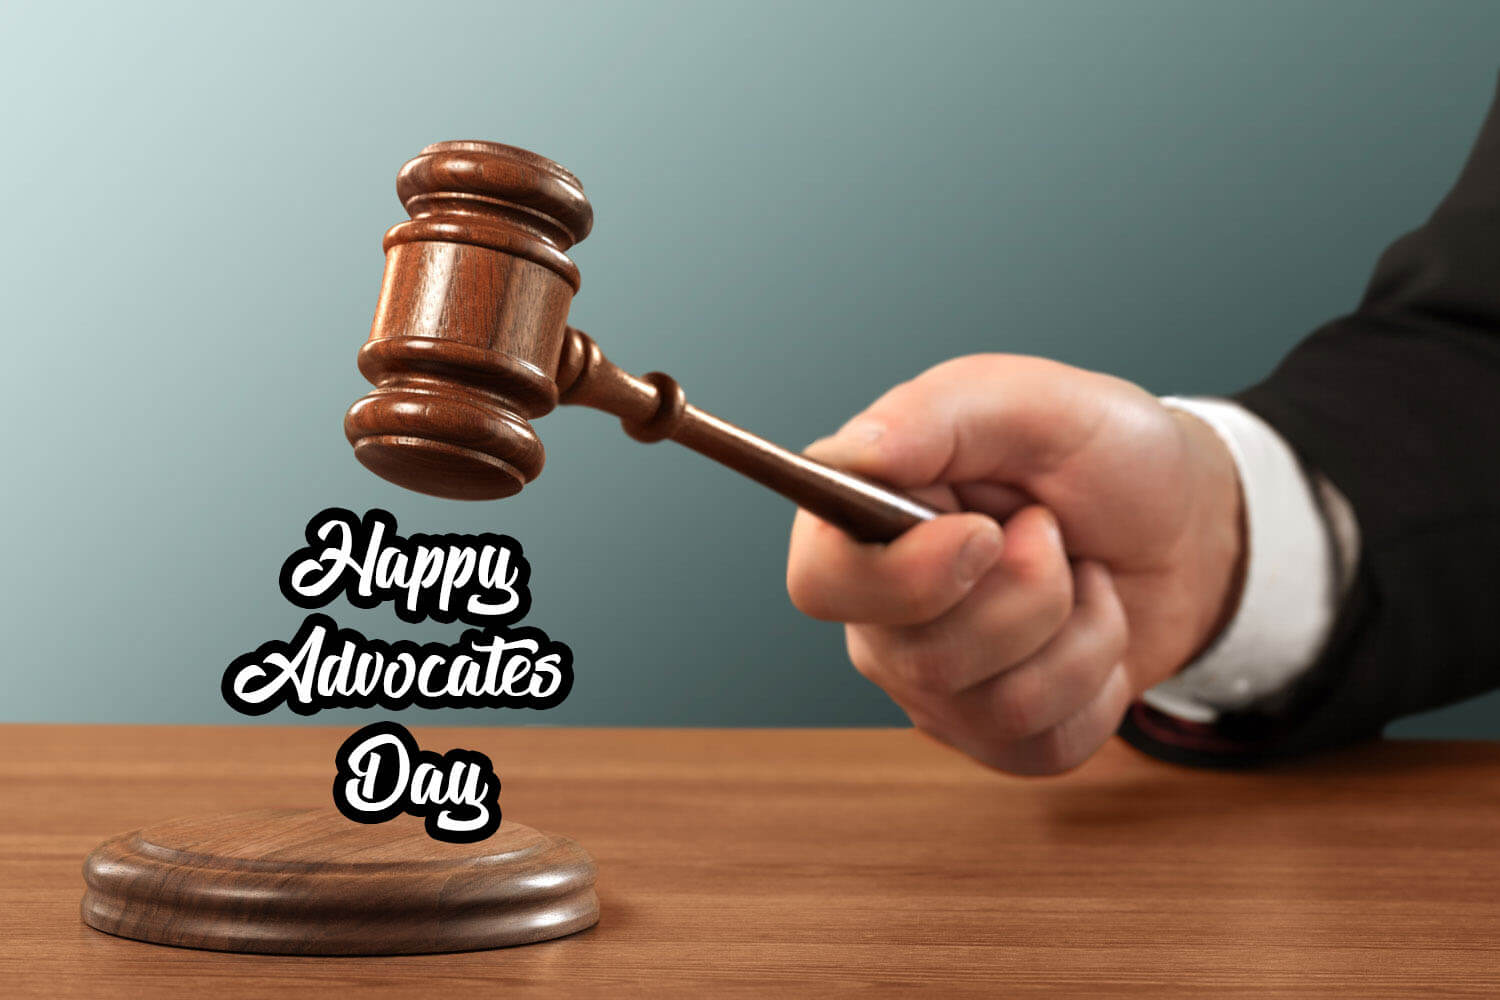 happy advocates day wishes greetings law judge justice hd wallpaper